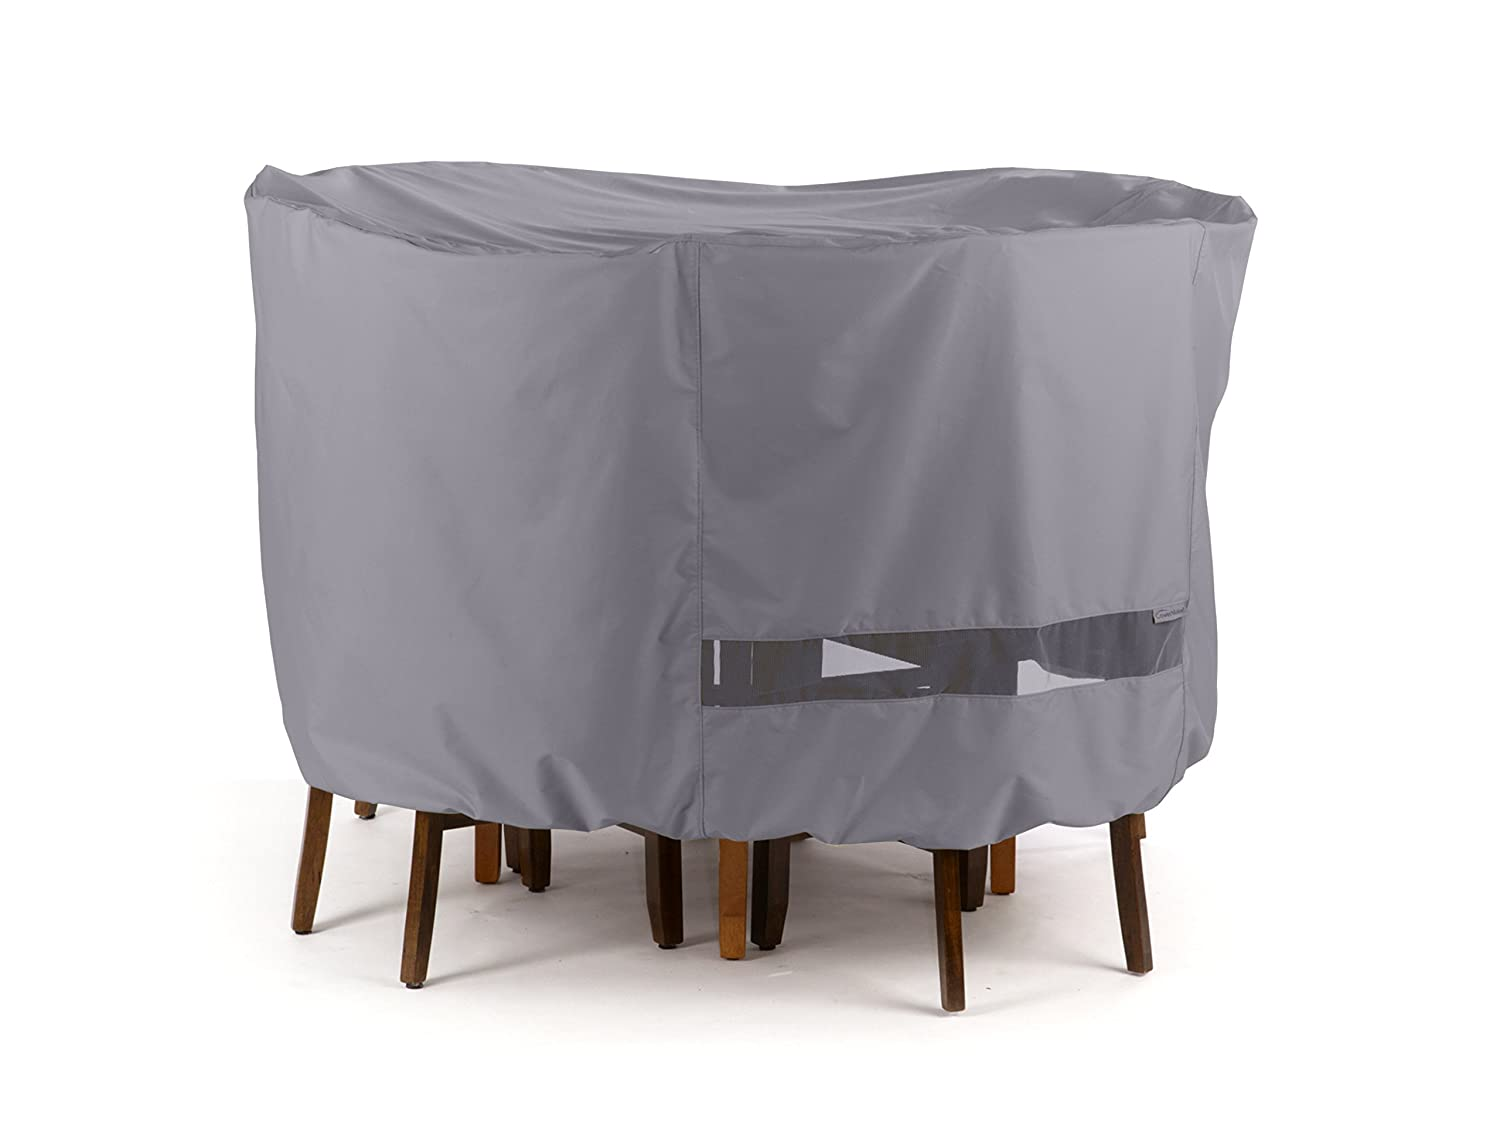 Covermates Round Dining Table Chair Set Cover 72DIAMETER x 30H Elite Collection 3 YR Warranty Year Around Protection – Charcoal